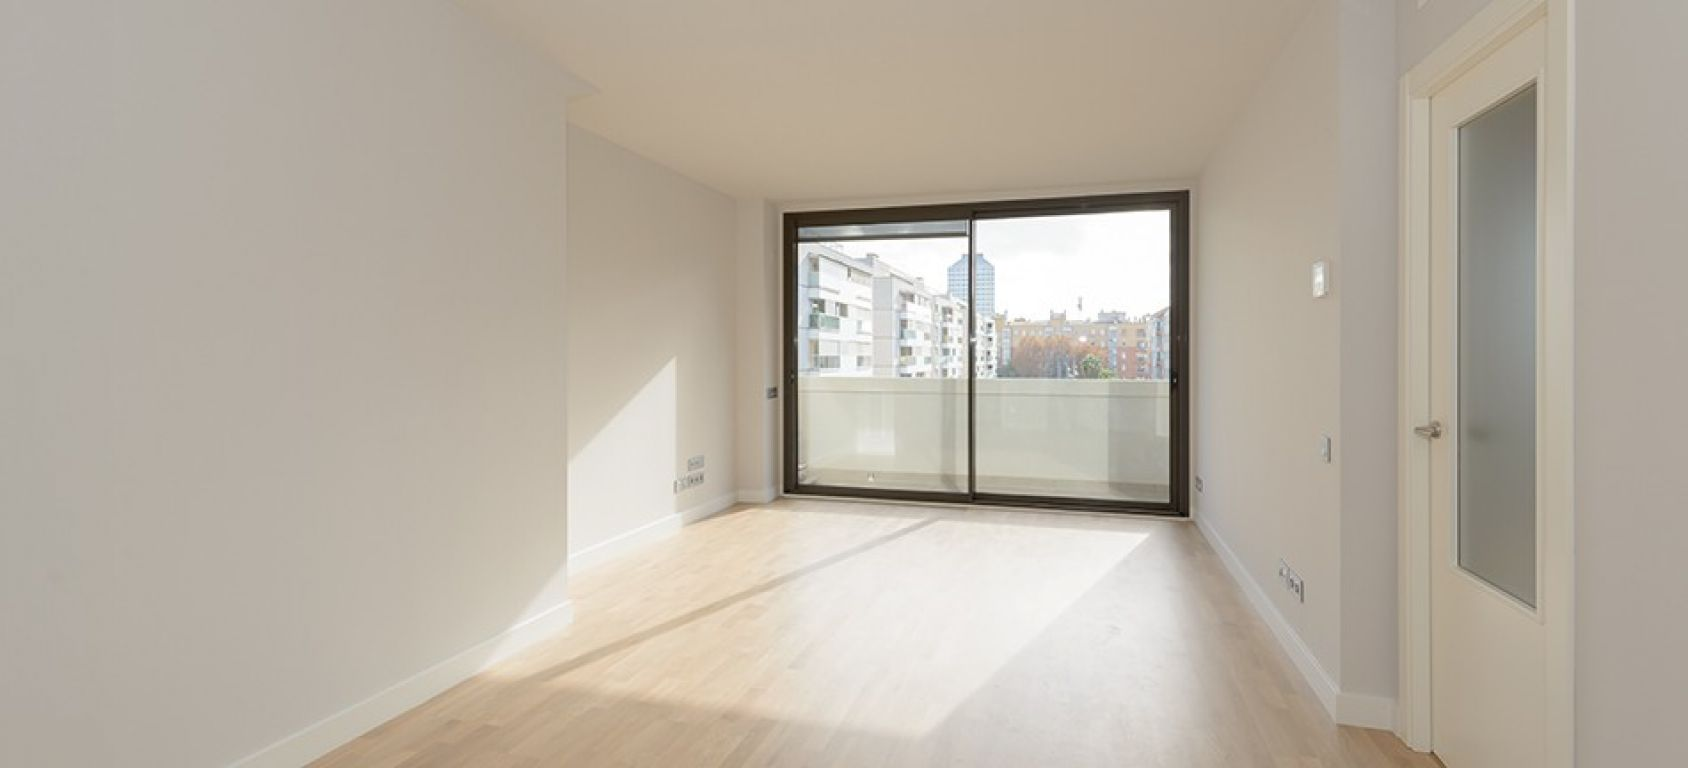 New home - Flat in, 105 m², near bus and train, new